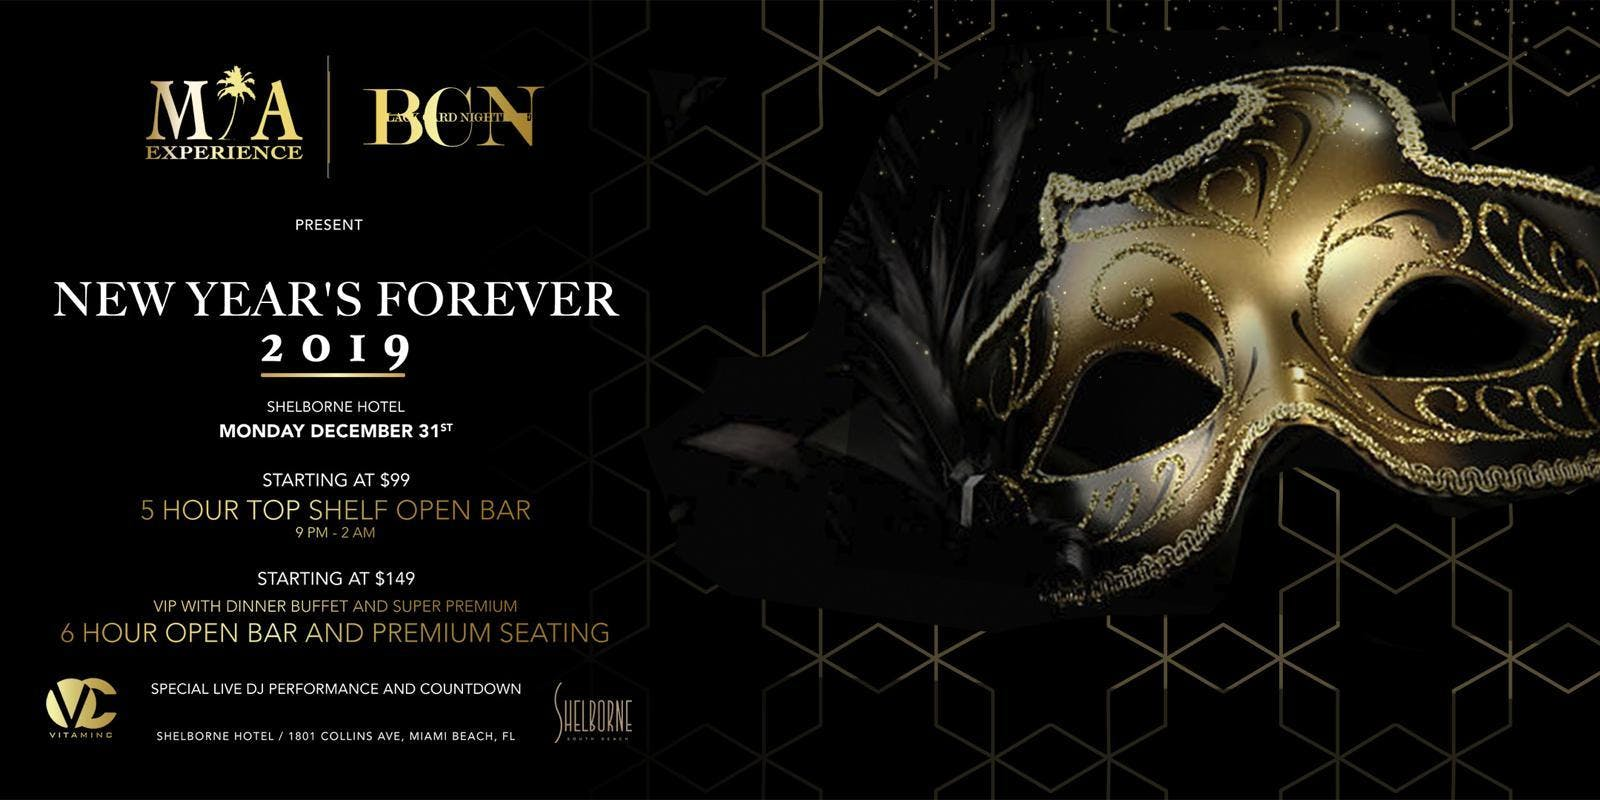 Shelborne NYE 2019 in Miami with OPEN BAR